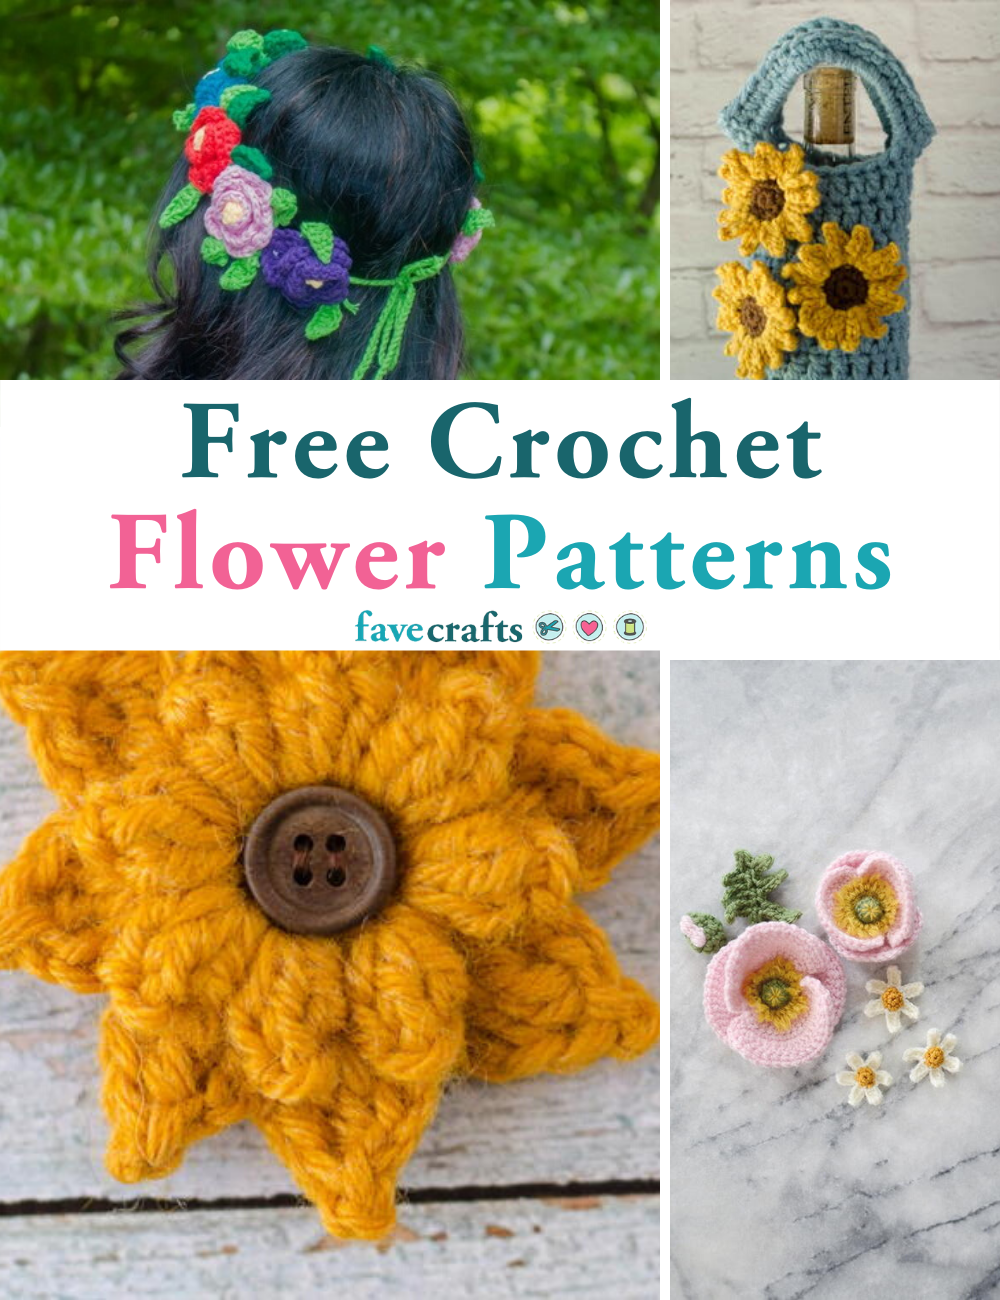 Free Crochet Patterns and Designs by LisaAuch: How to Crochet a ... | 1300x1000